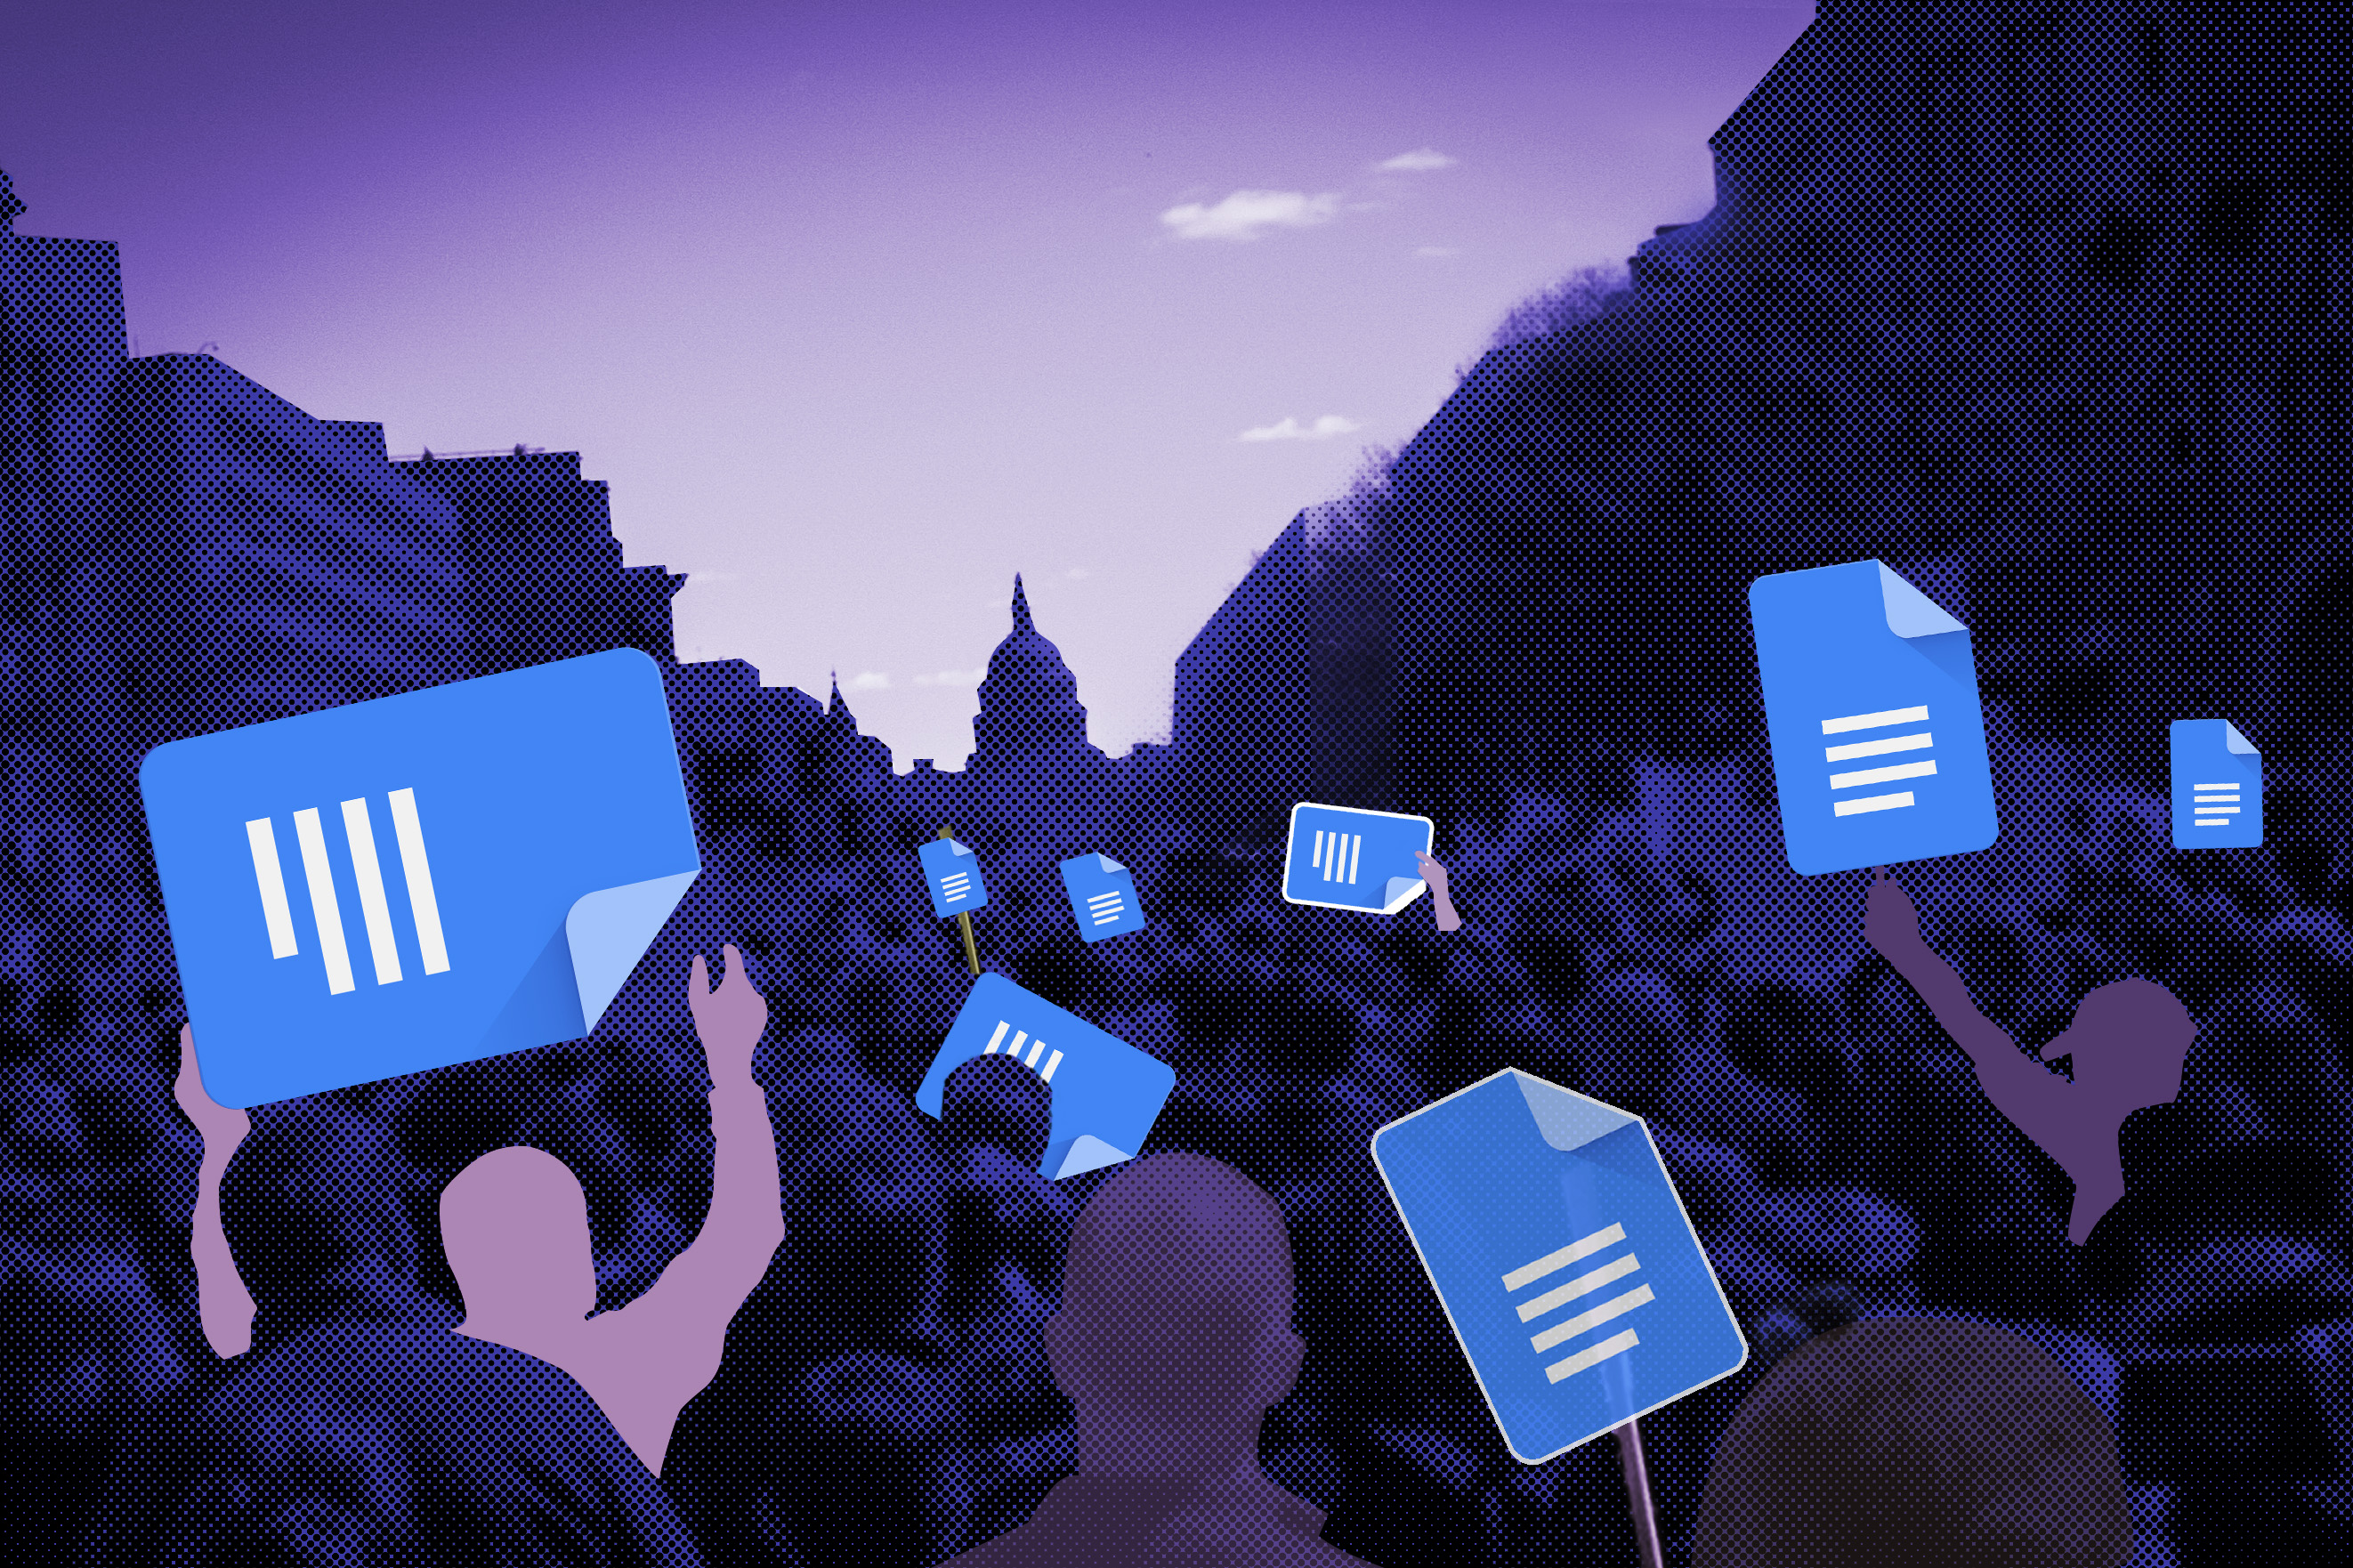 illustration of crowds holding Gdoc signs